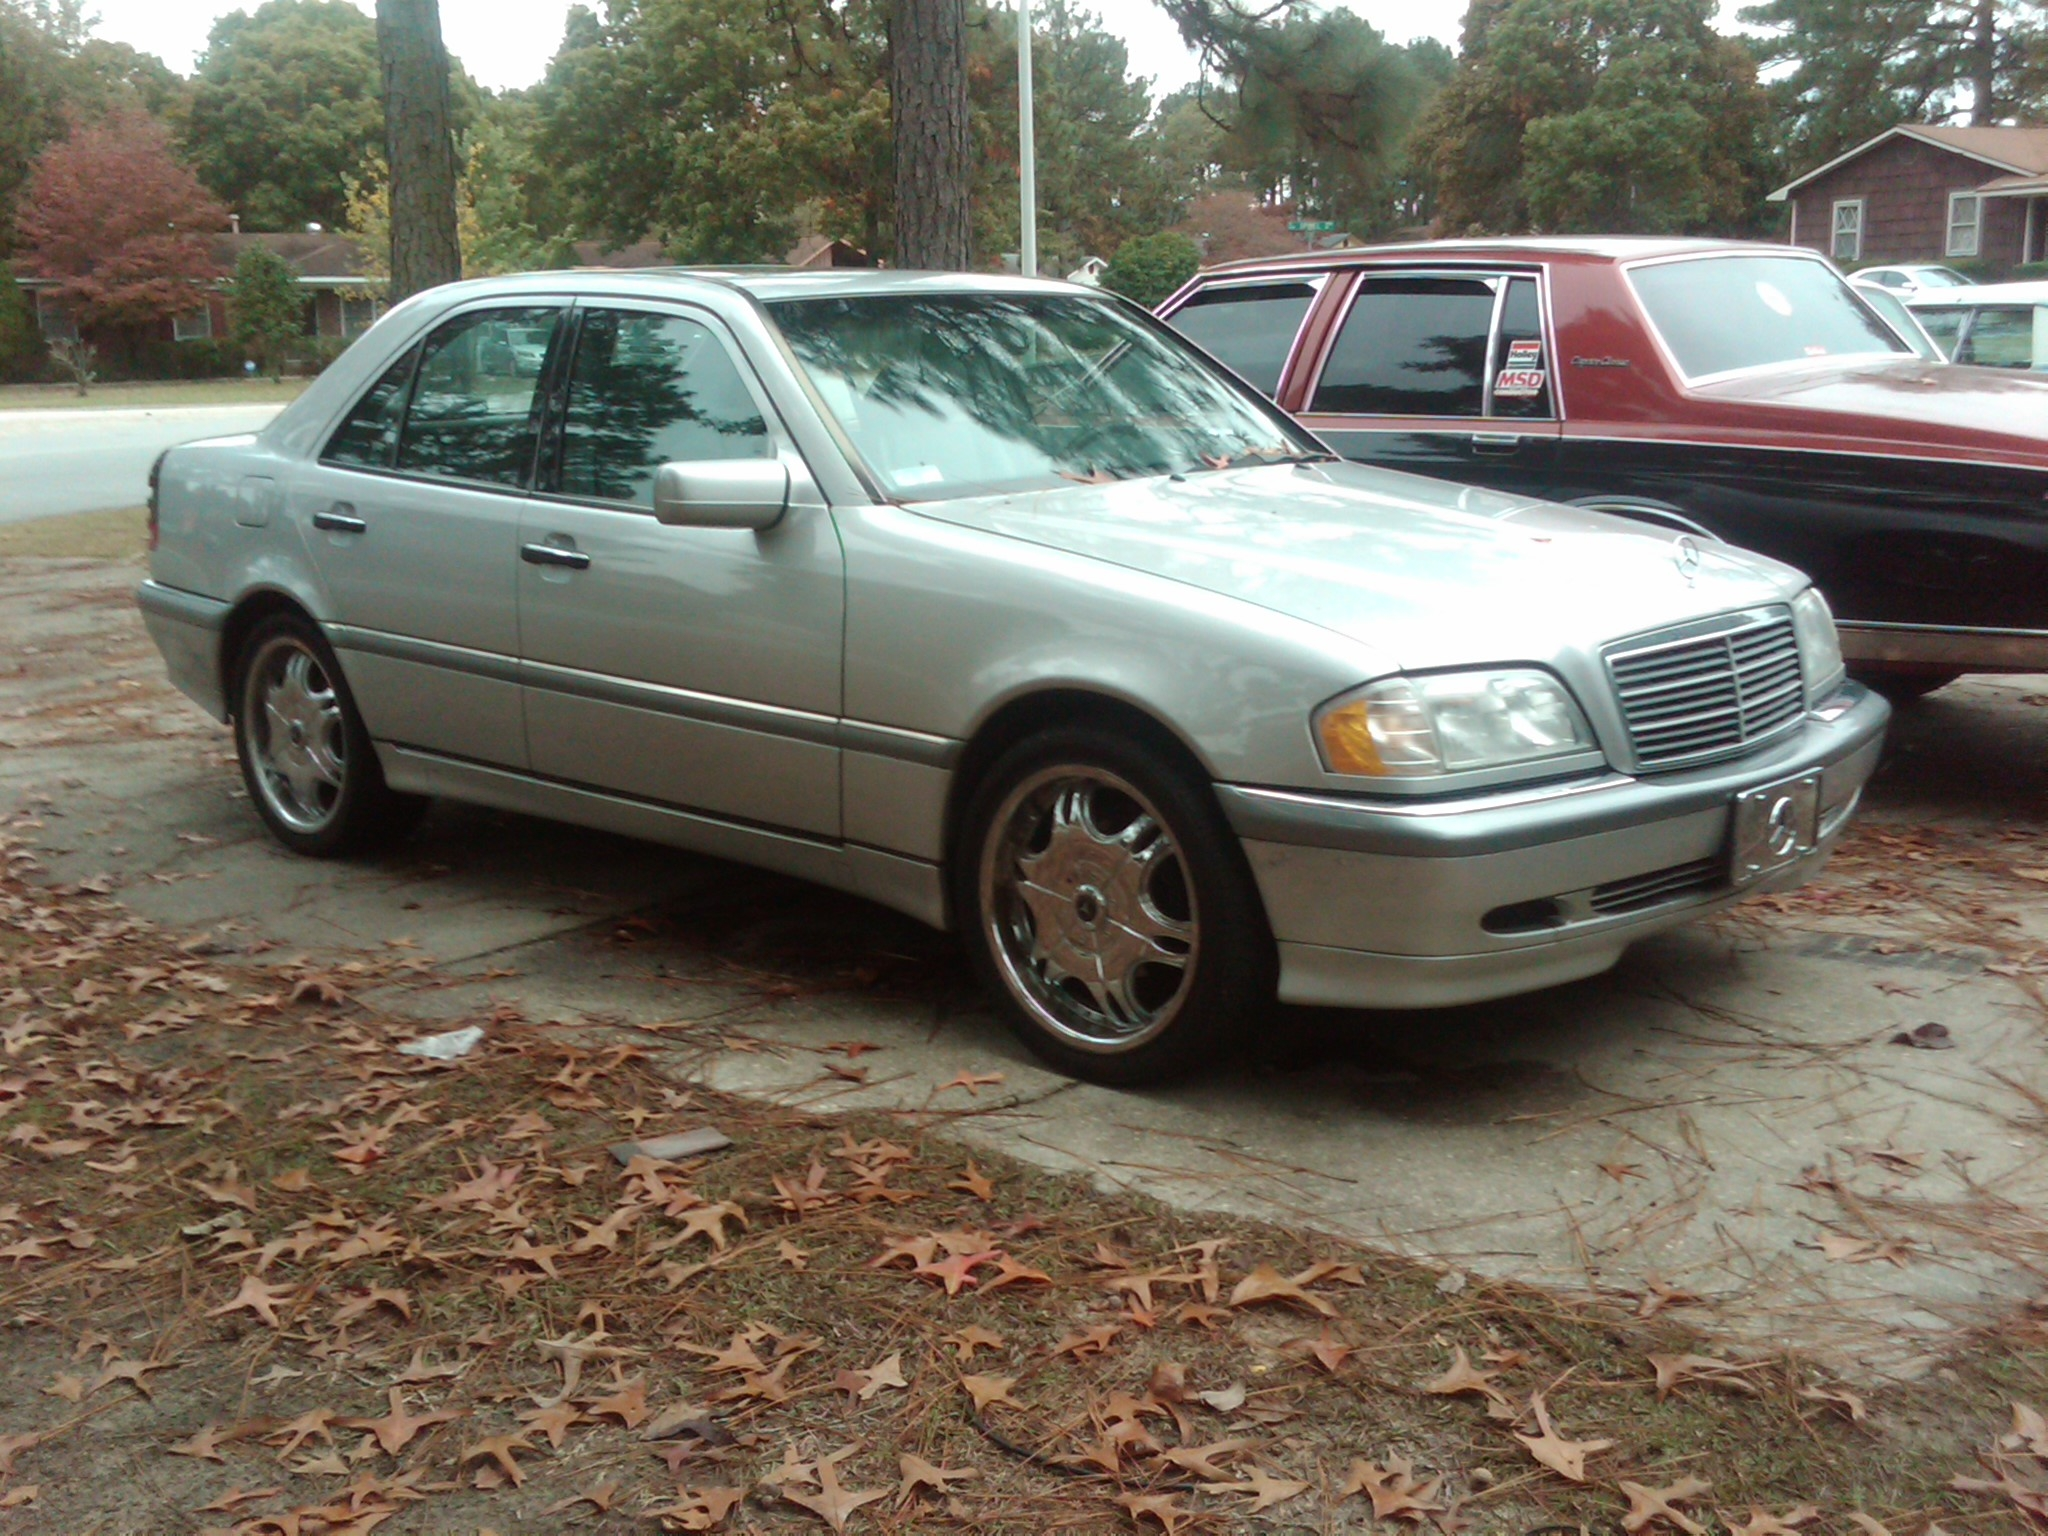 Byrdfy 39 s 1998 mercedes benz 230 in fayetteville nc for Mercedes benz fayetteville